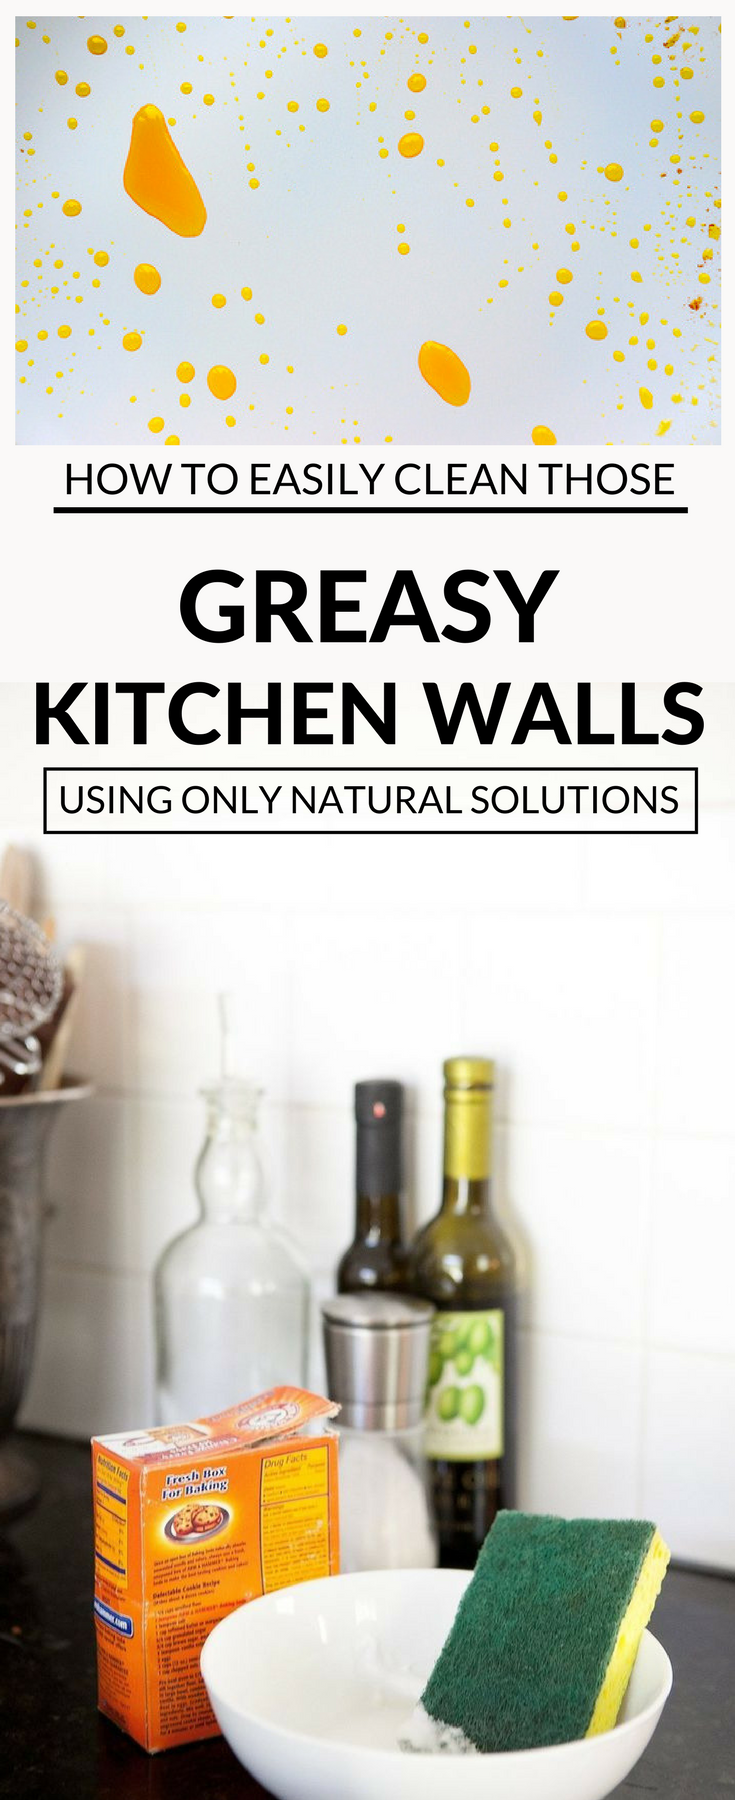 How To Easily Clean Those Greasy Kitchen Walls Using Only Natural ...